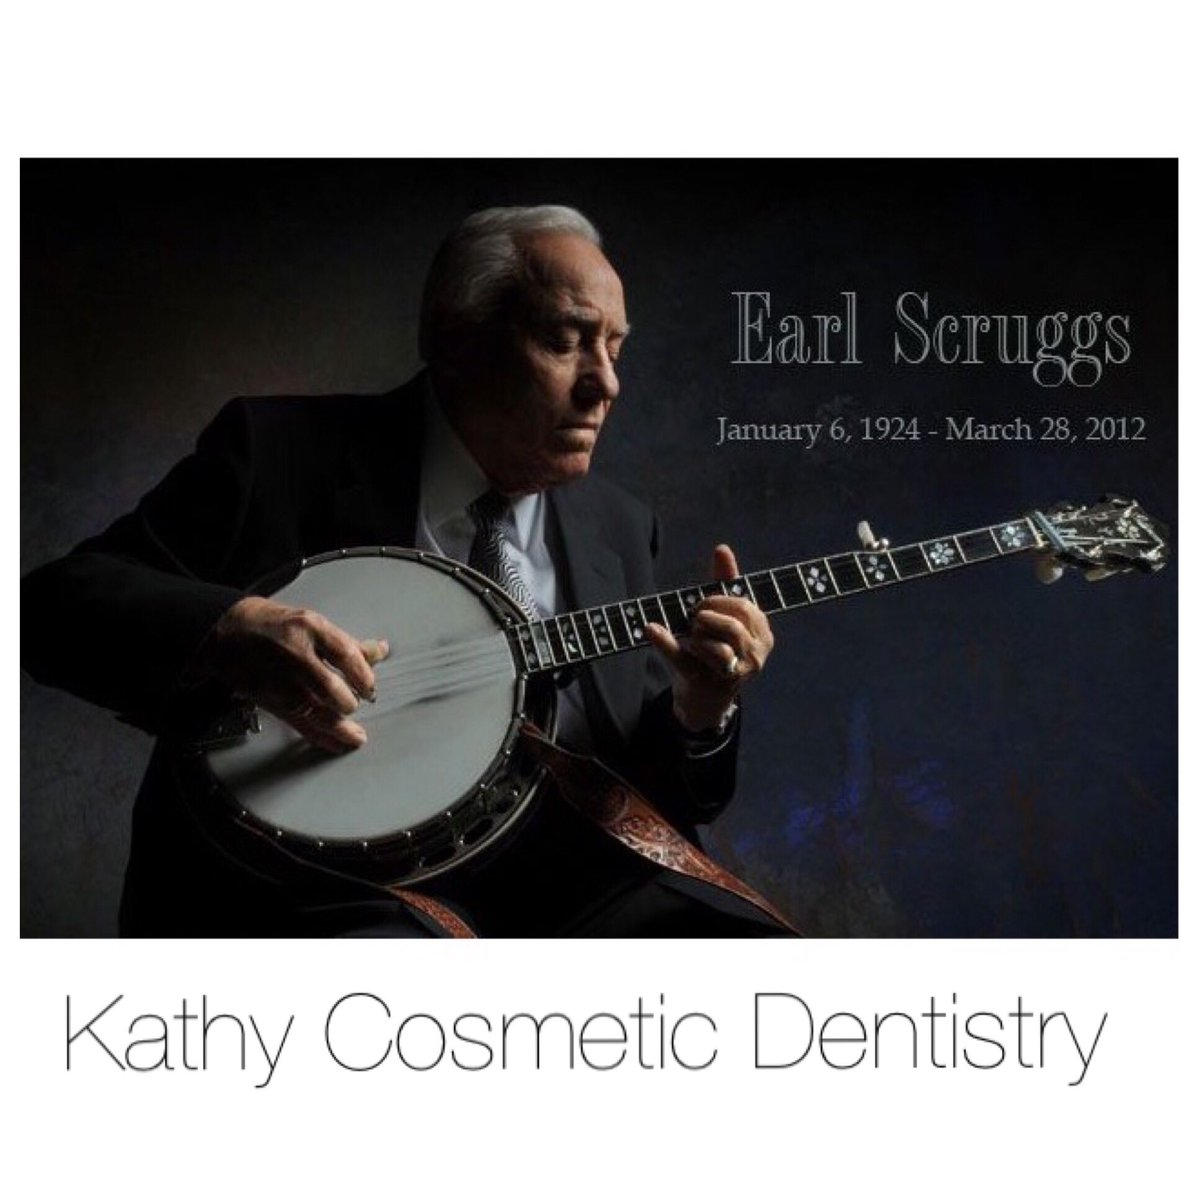 Earl Scruggs who thought out of the box and played banjo with three fingers .... #EarlScruggs #jakepatterson #dentist #veneers #smiledesign #implants #invisalign<br>http://pic.twitter.com/WWZ3hnWIpt